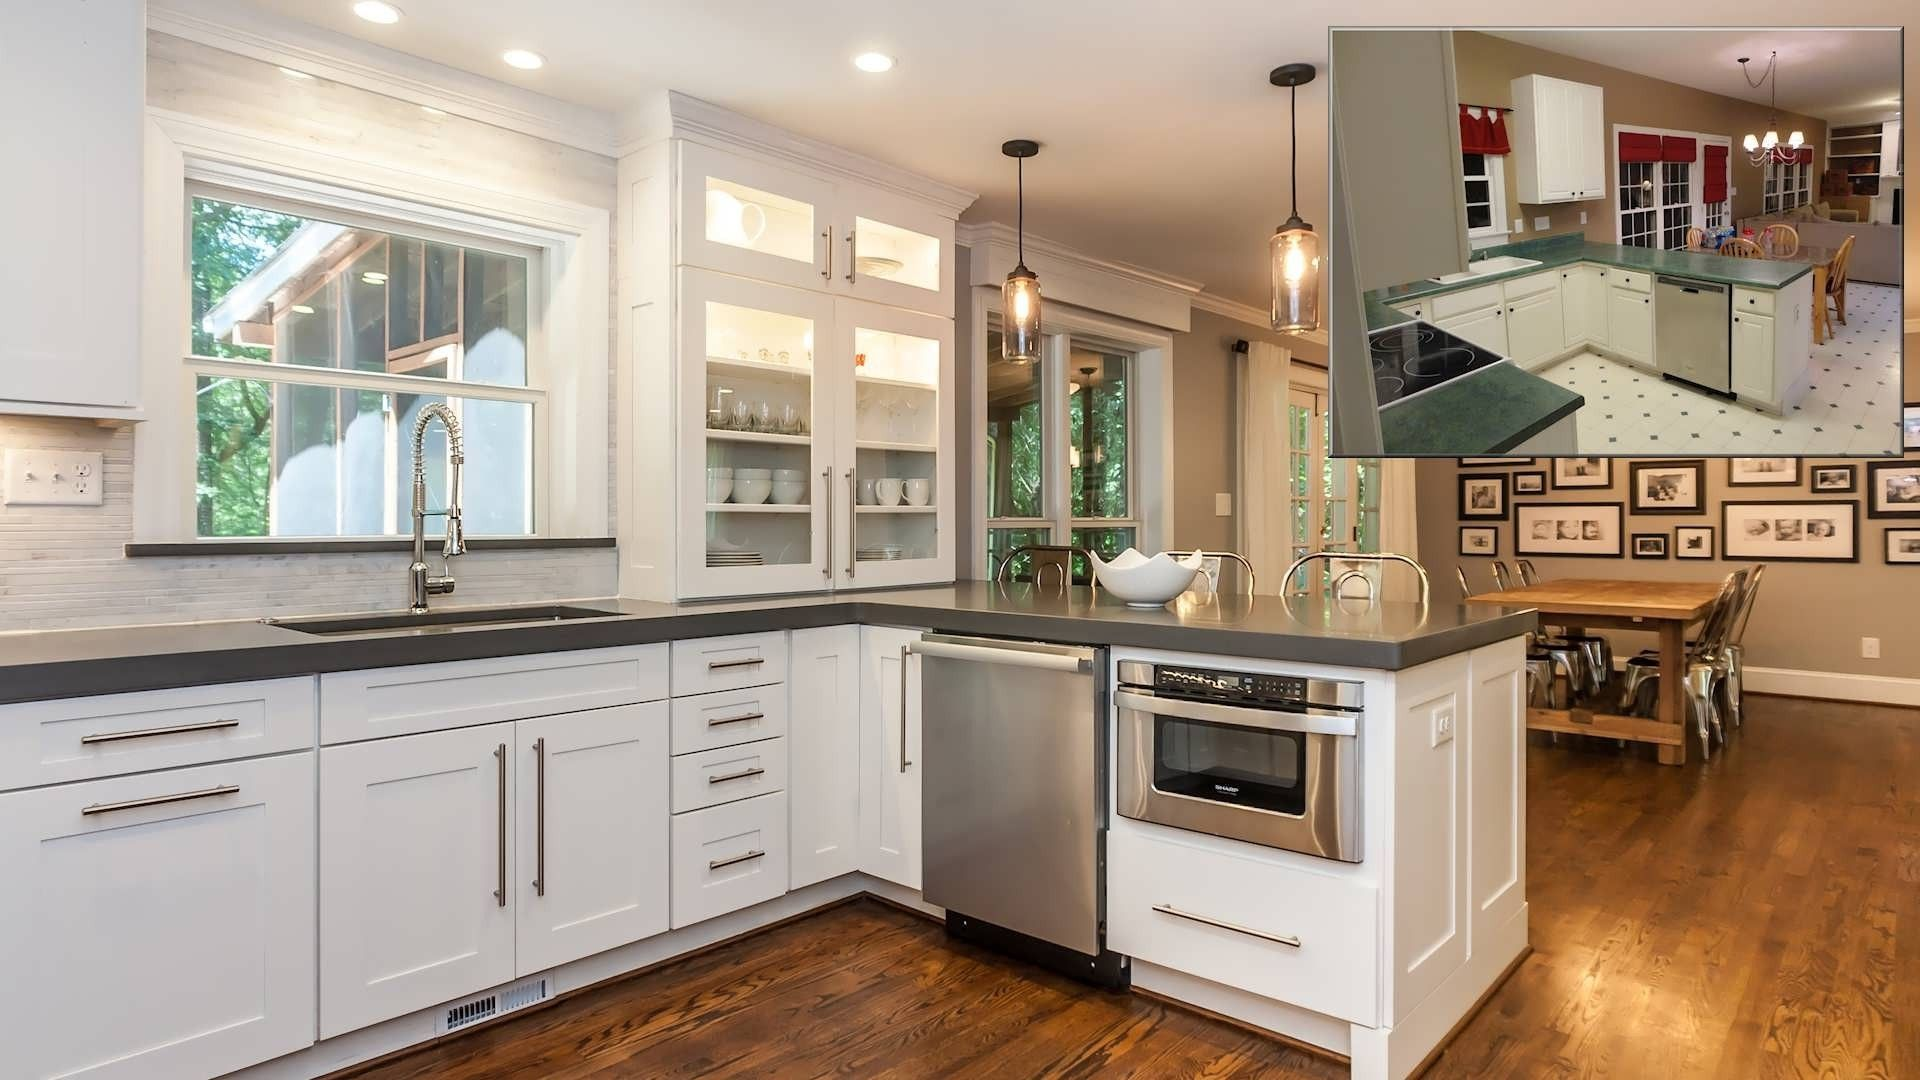 Beautiful How To Restore Kitchen Cabinets Without Sanding And Varnishing The Most Incredible As W Kitchen Remodel Kitchen Remodel Cost Kitchen Remodel Design